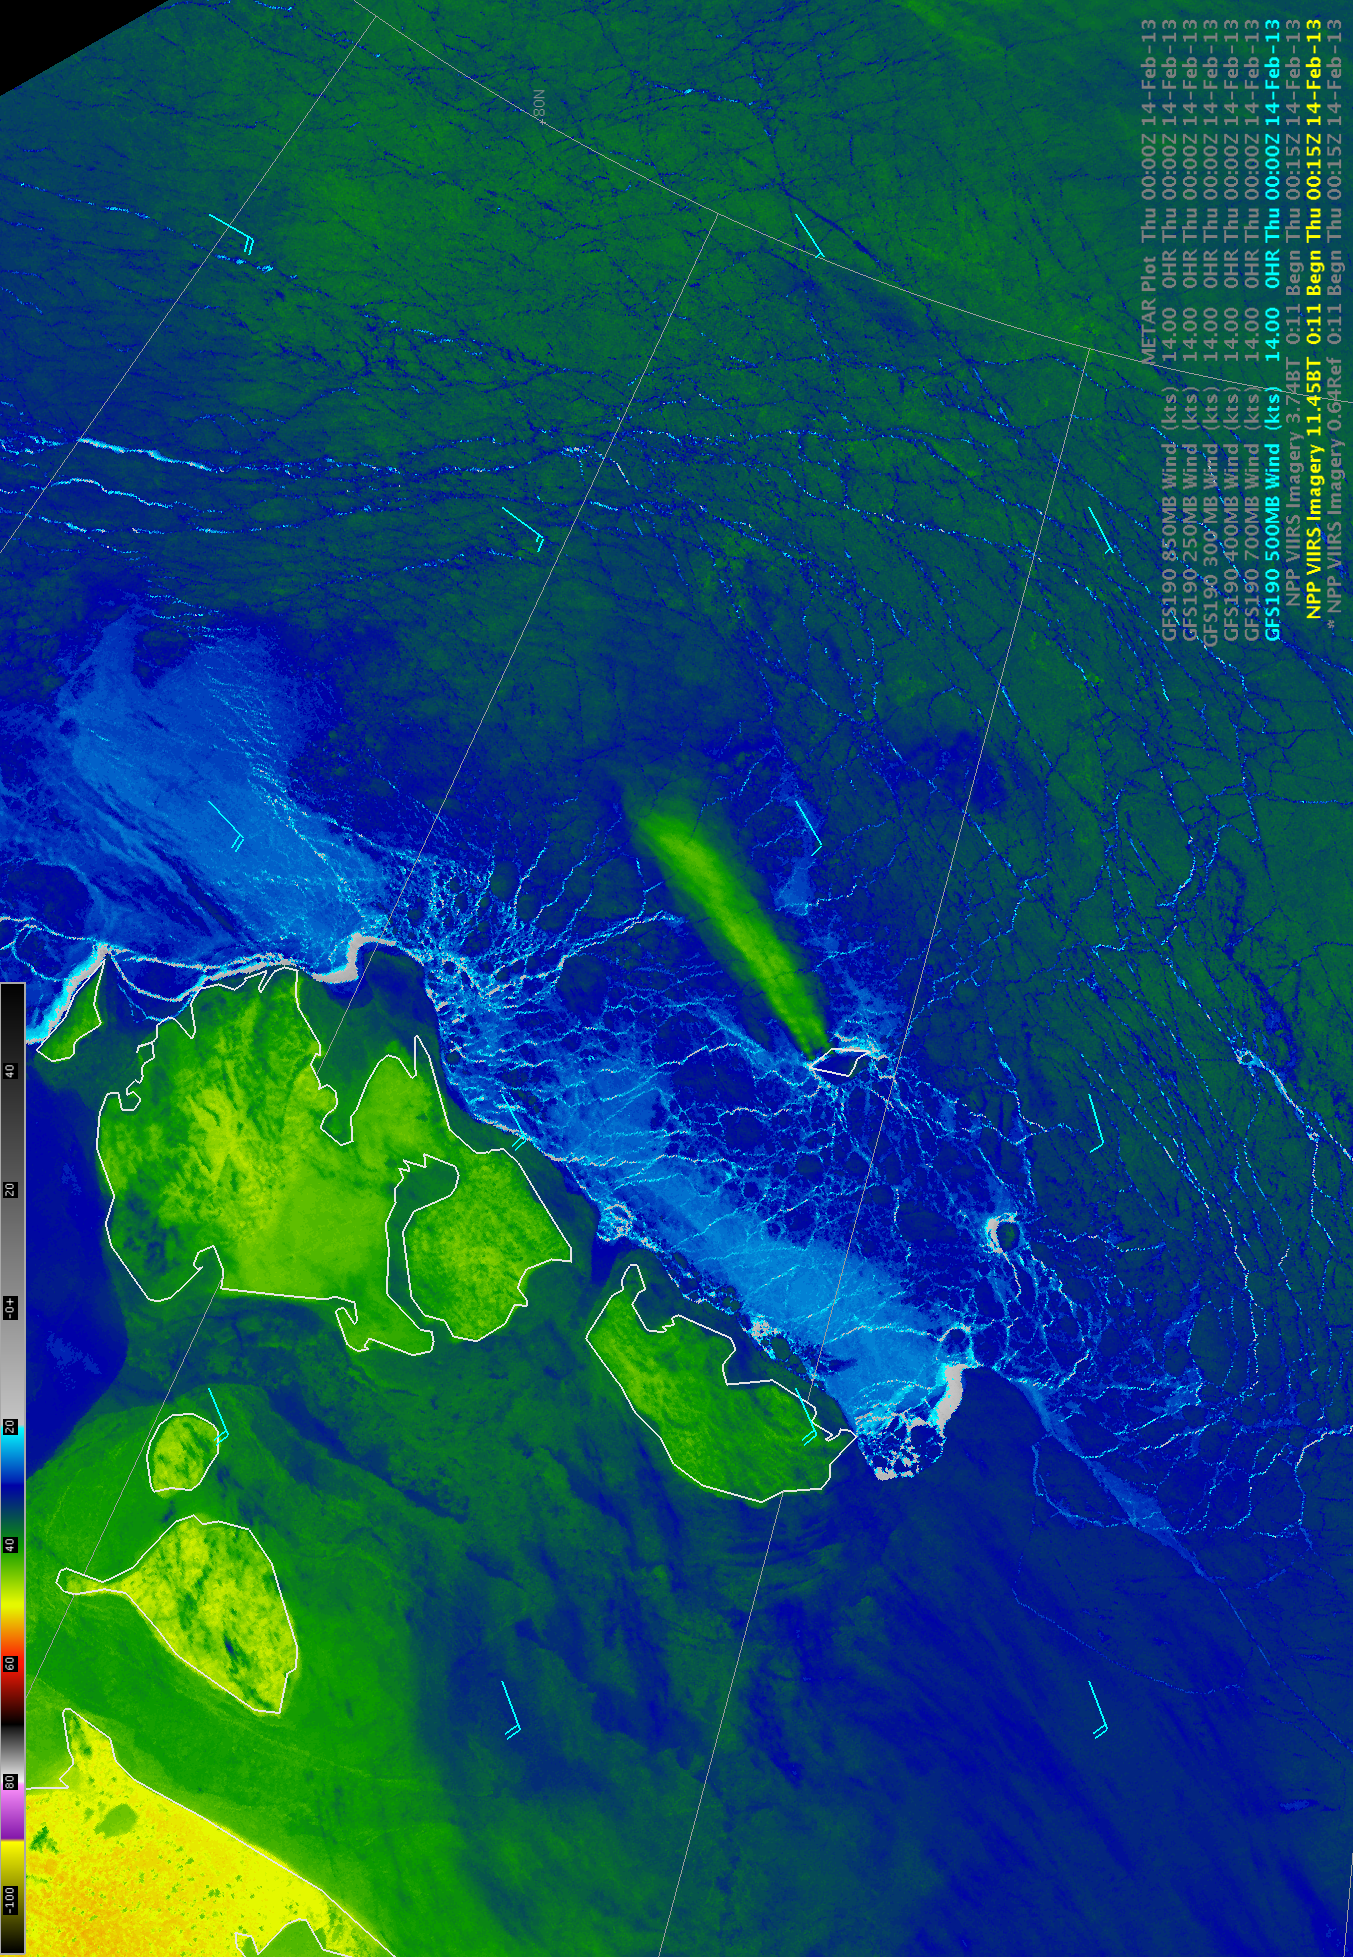 Suomi NPP VIIRS 11.45 µm IR image with GFS190 500 hPa wind barbs